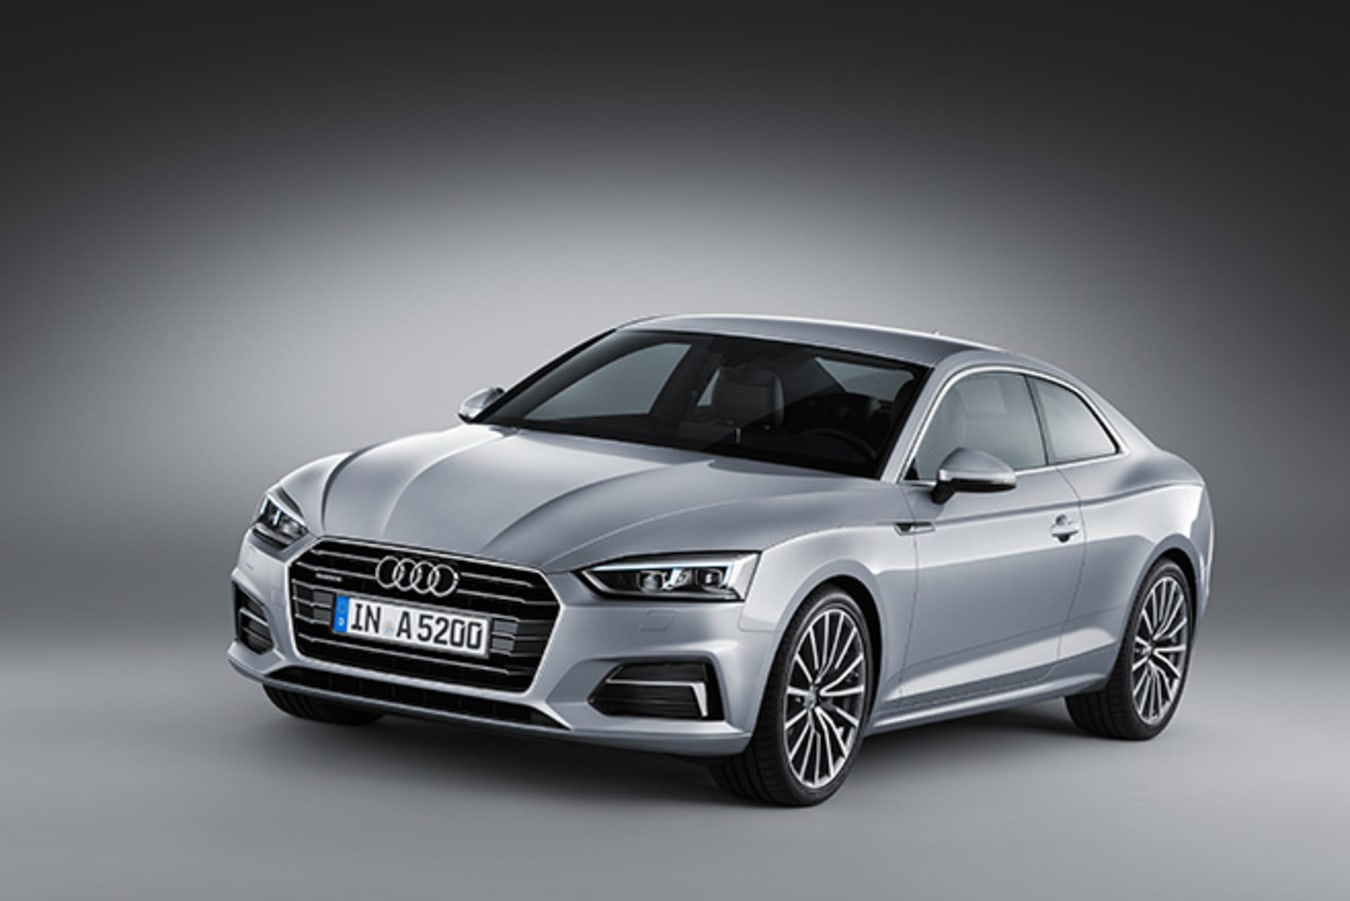 Audi A5 front side